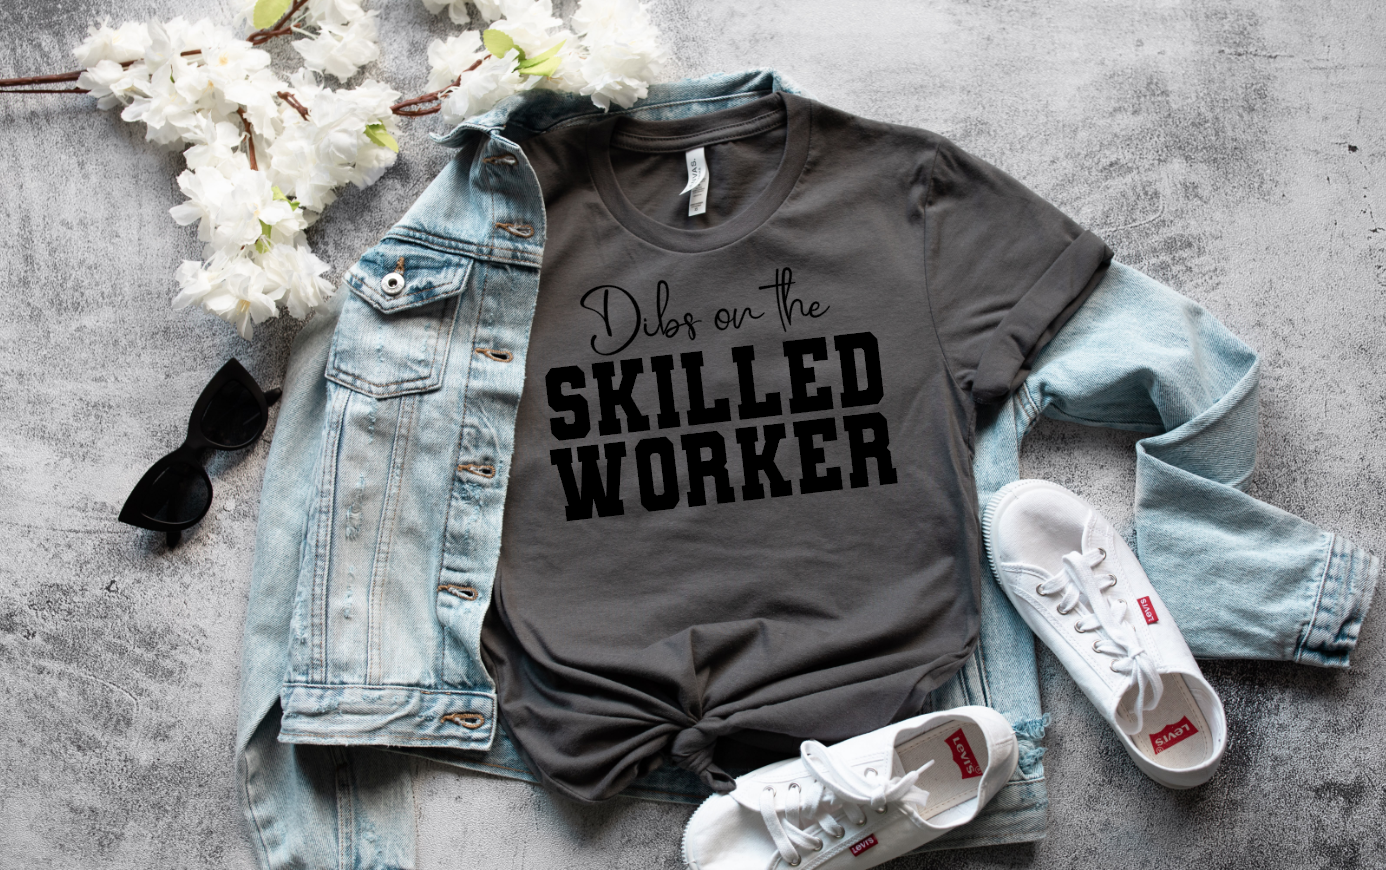 dibs on the skilled worker